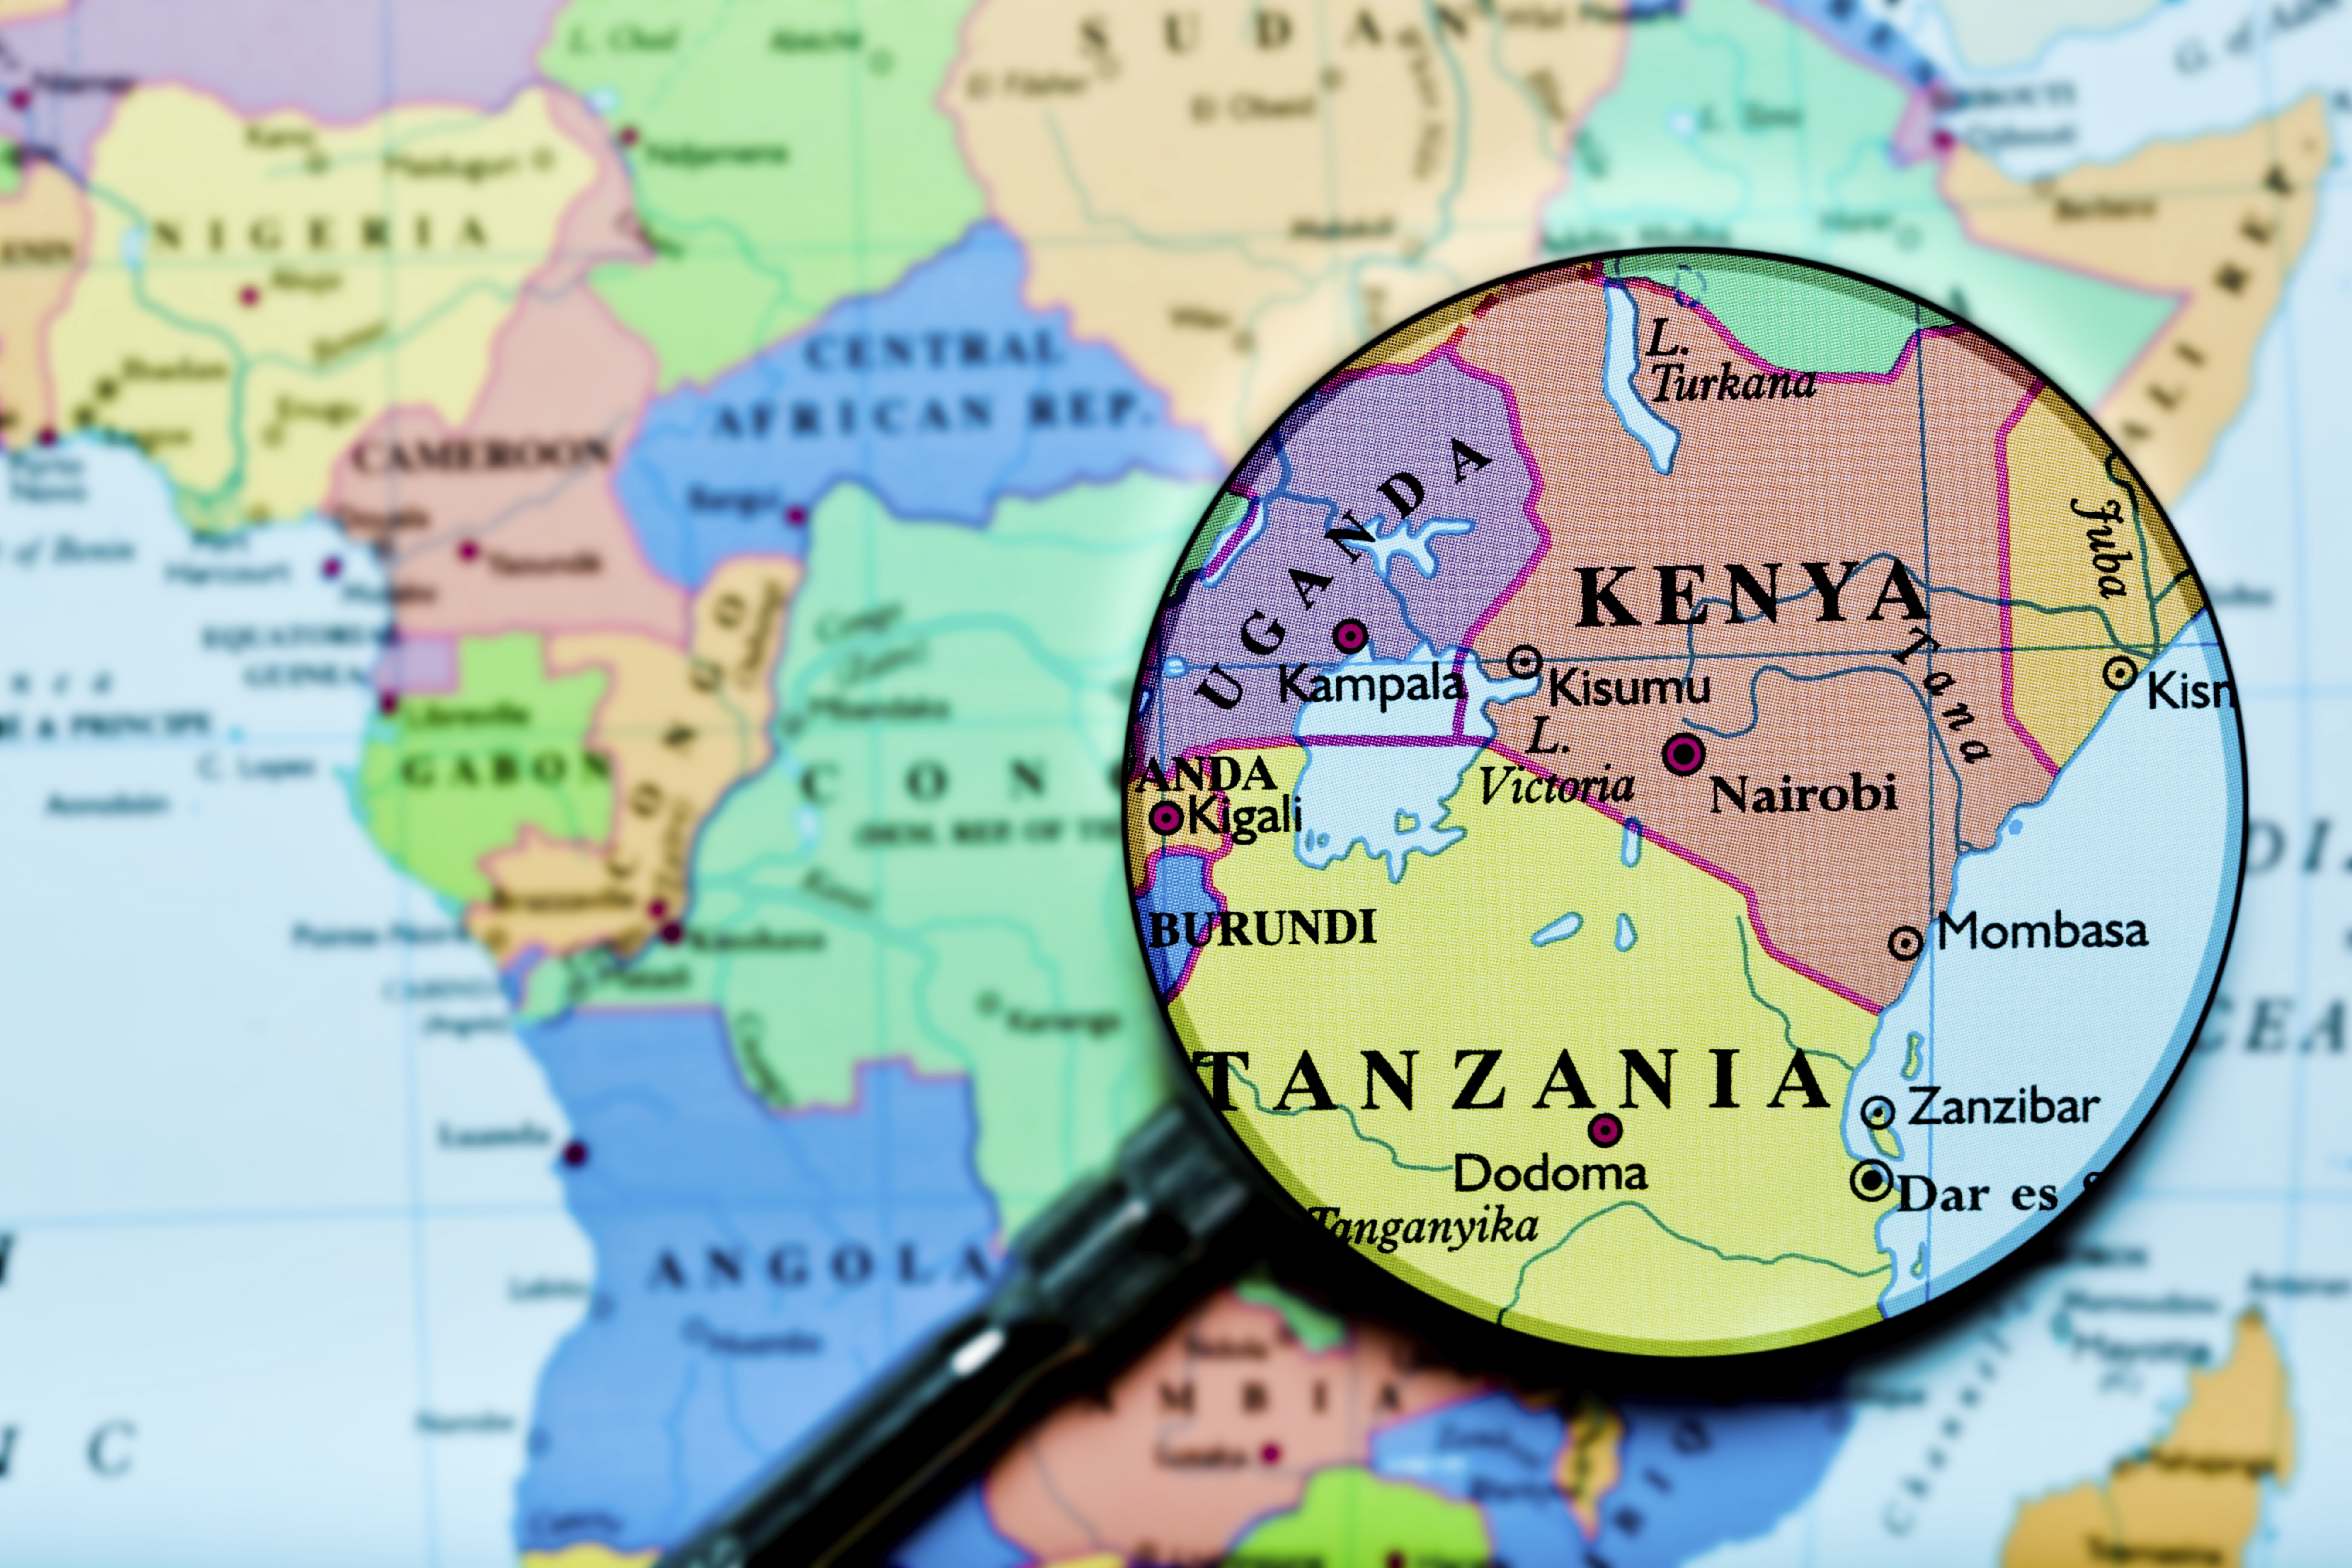 Kenya On Map on vietnam on map, lesotho on map, cape verde on map, china on map, guatemala on map, somalia on map, liberia on map, new zealand on map, mozambique on map, brazil on map, libya on map, morocco on map, africa on map, sudan on map, eritrea on map, korea on map, ghana on map, japan on map, malawi on map, malaysia on map,